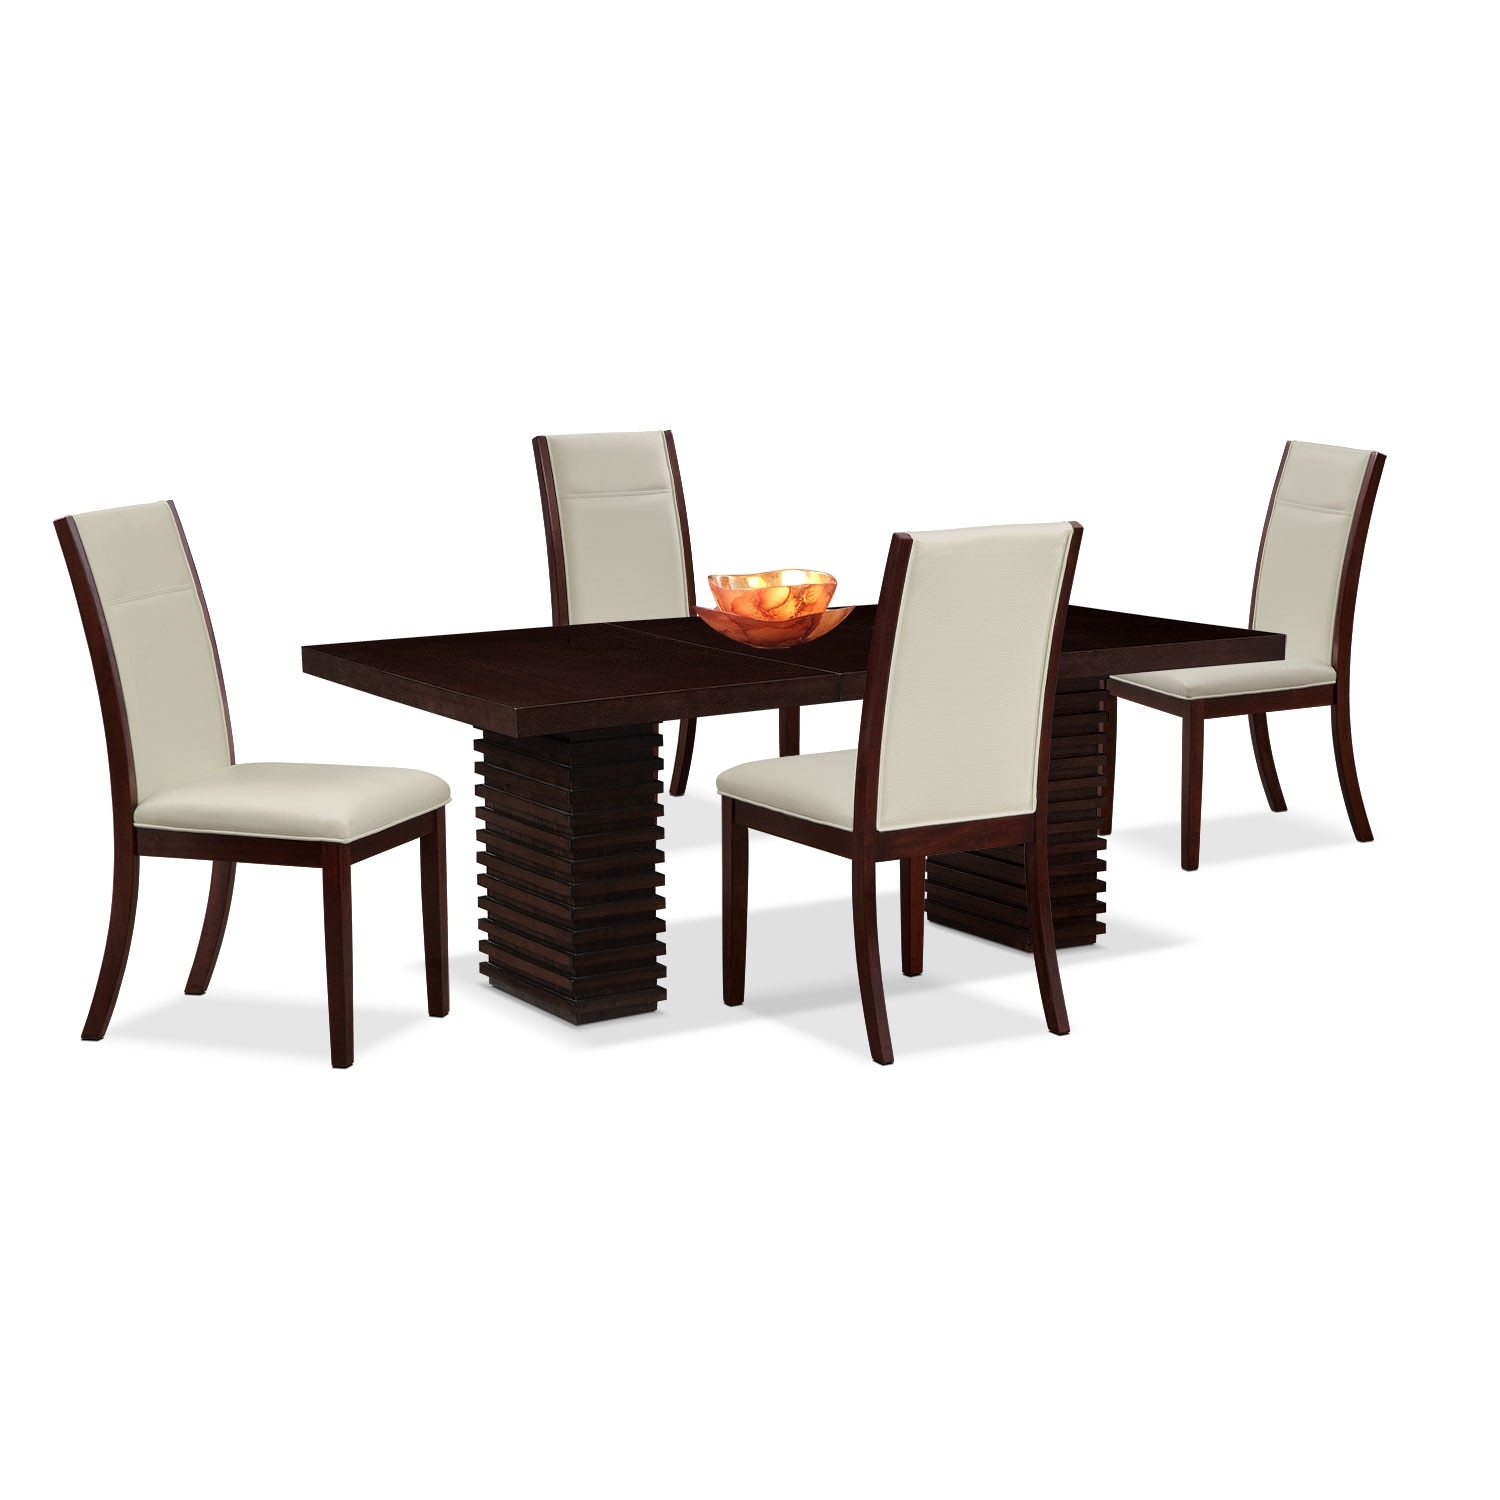 Dining Room Furniture - Paragon Calcutta 5 Pc. Dinette